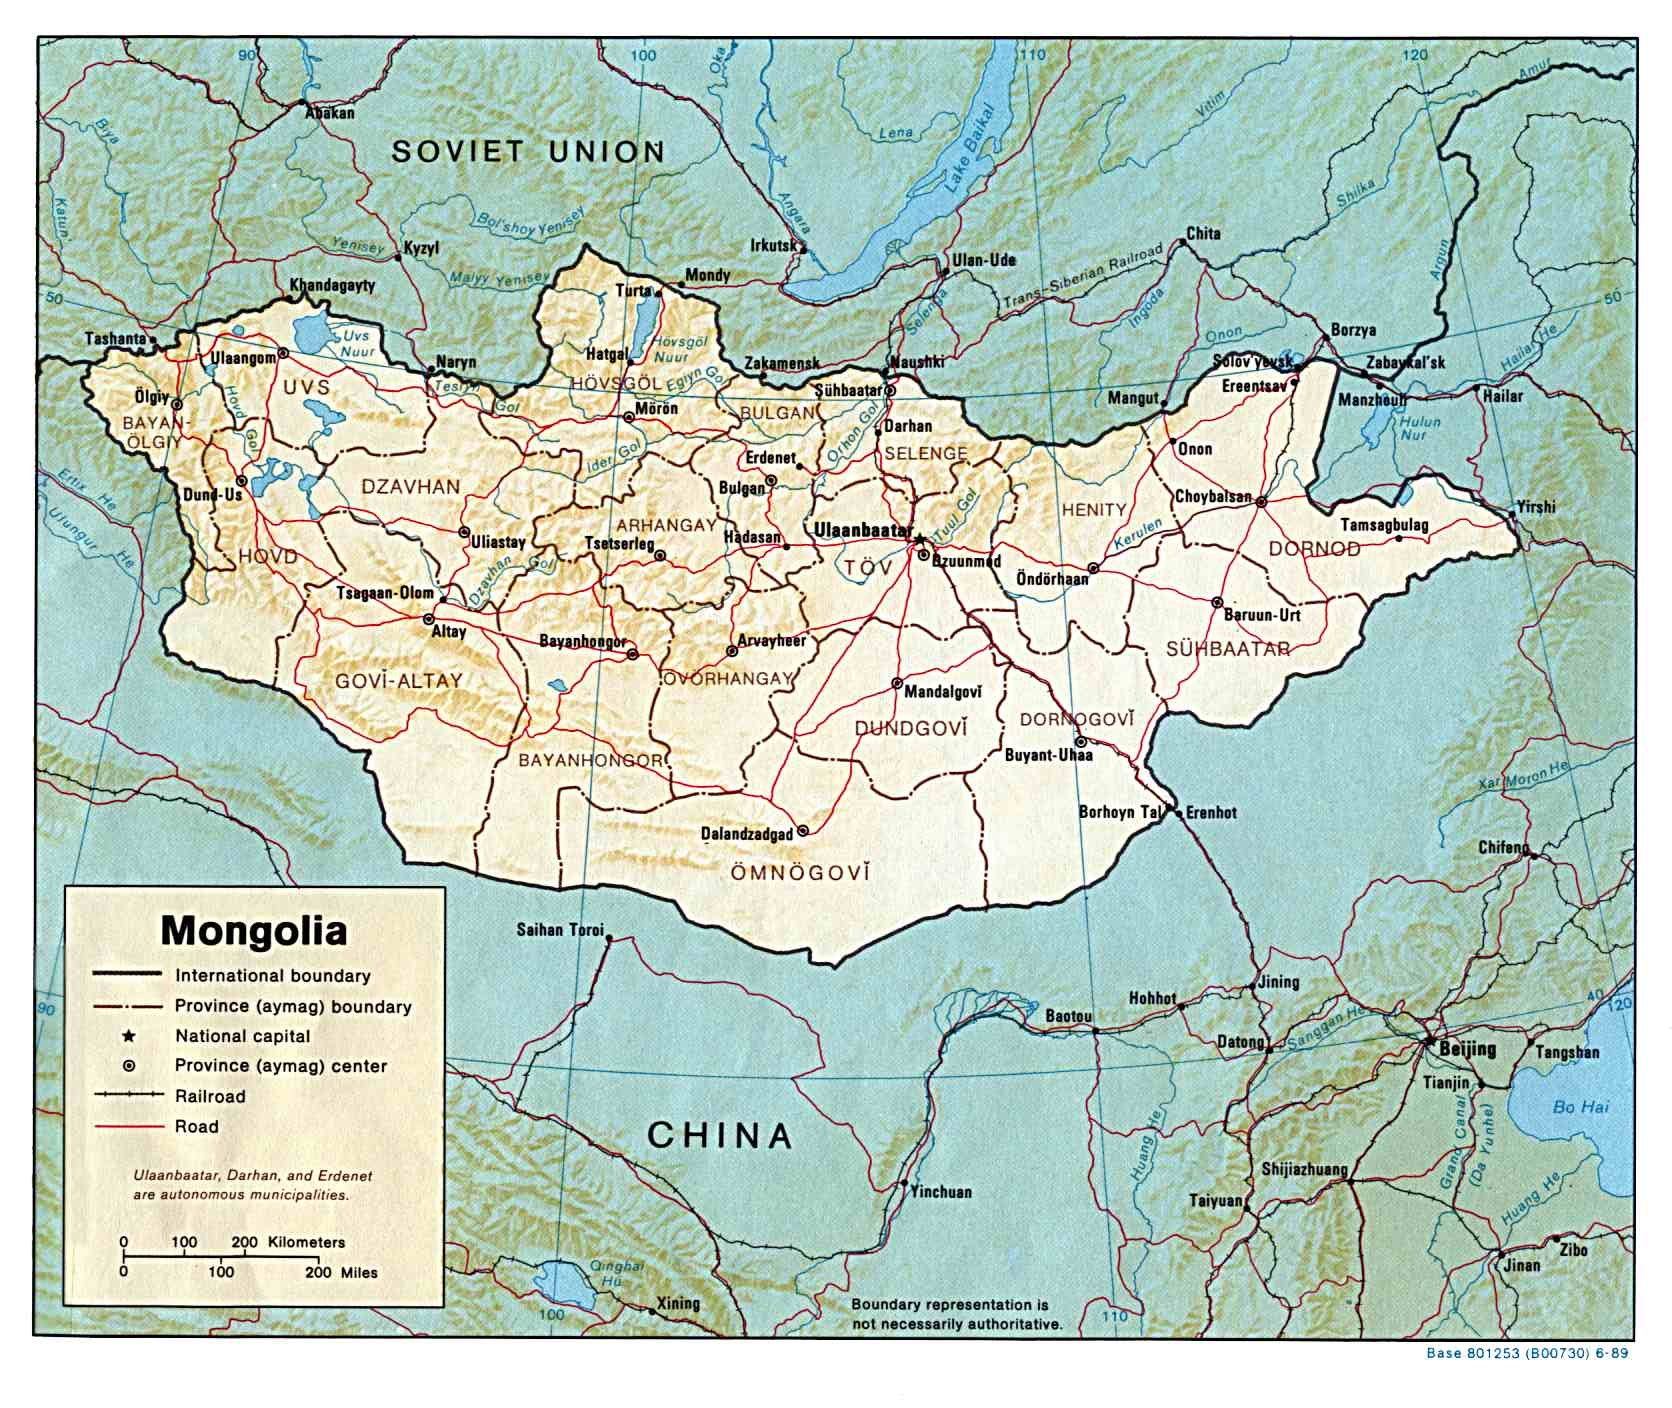 Mongolia Map and Satellite Image